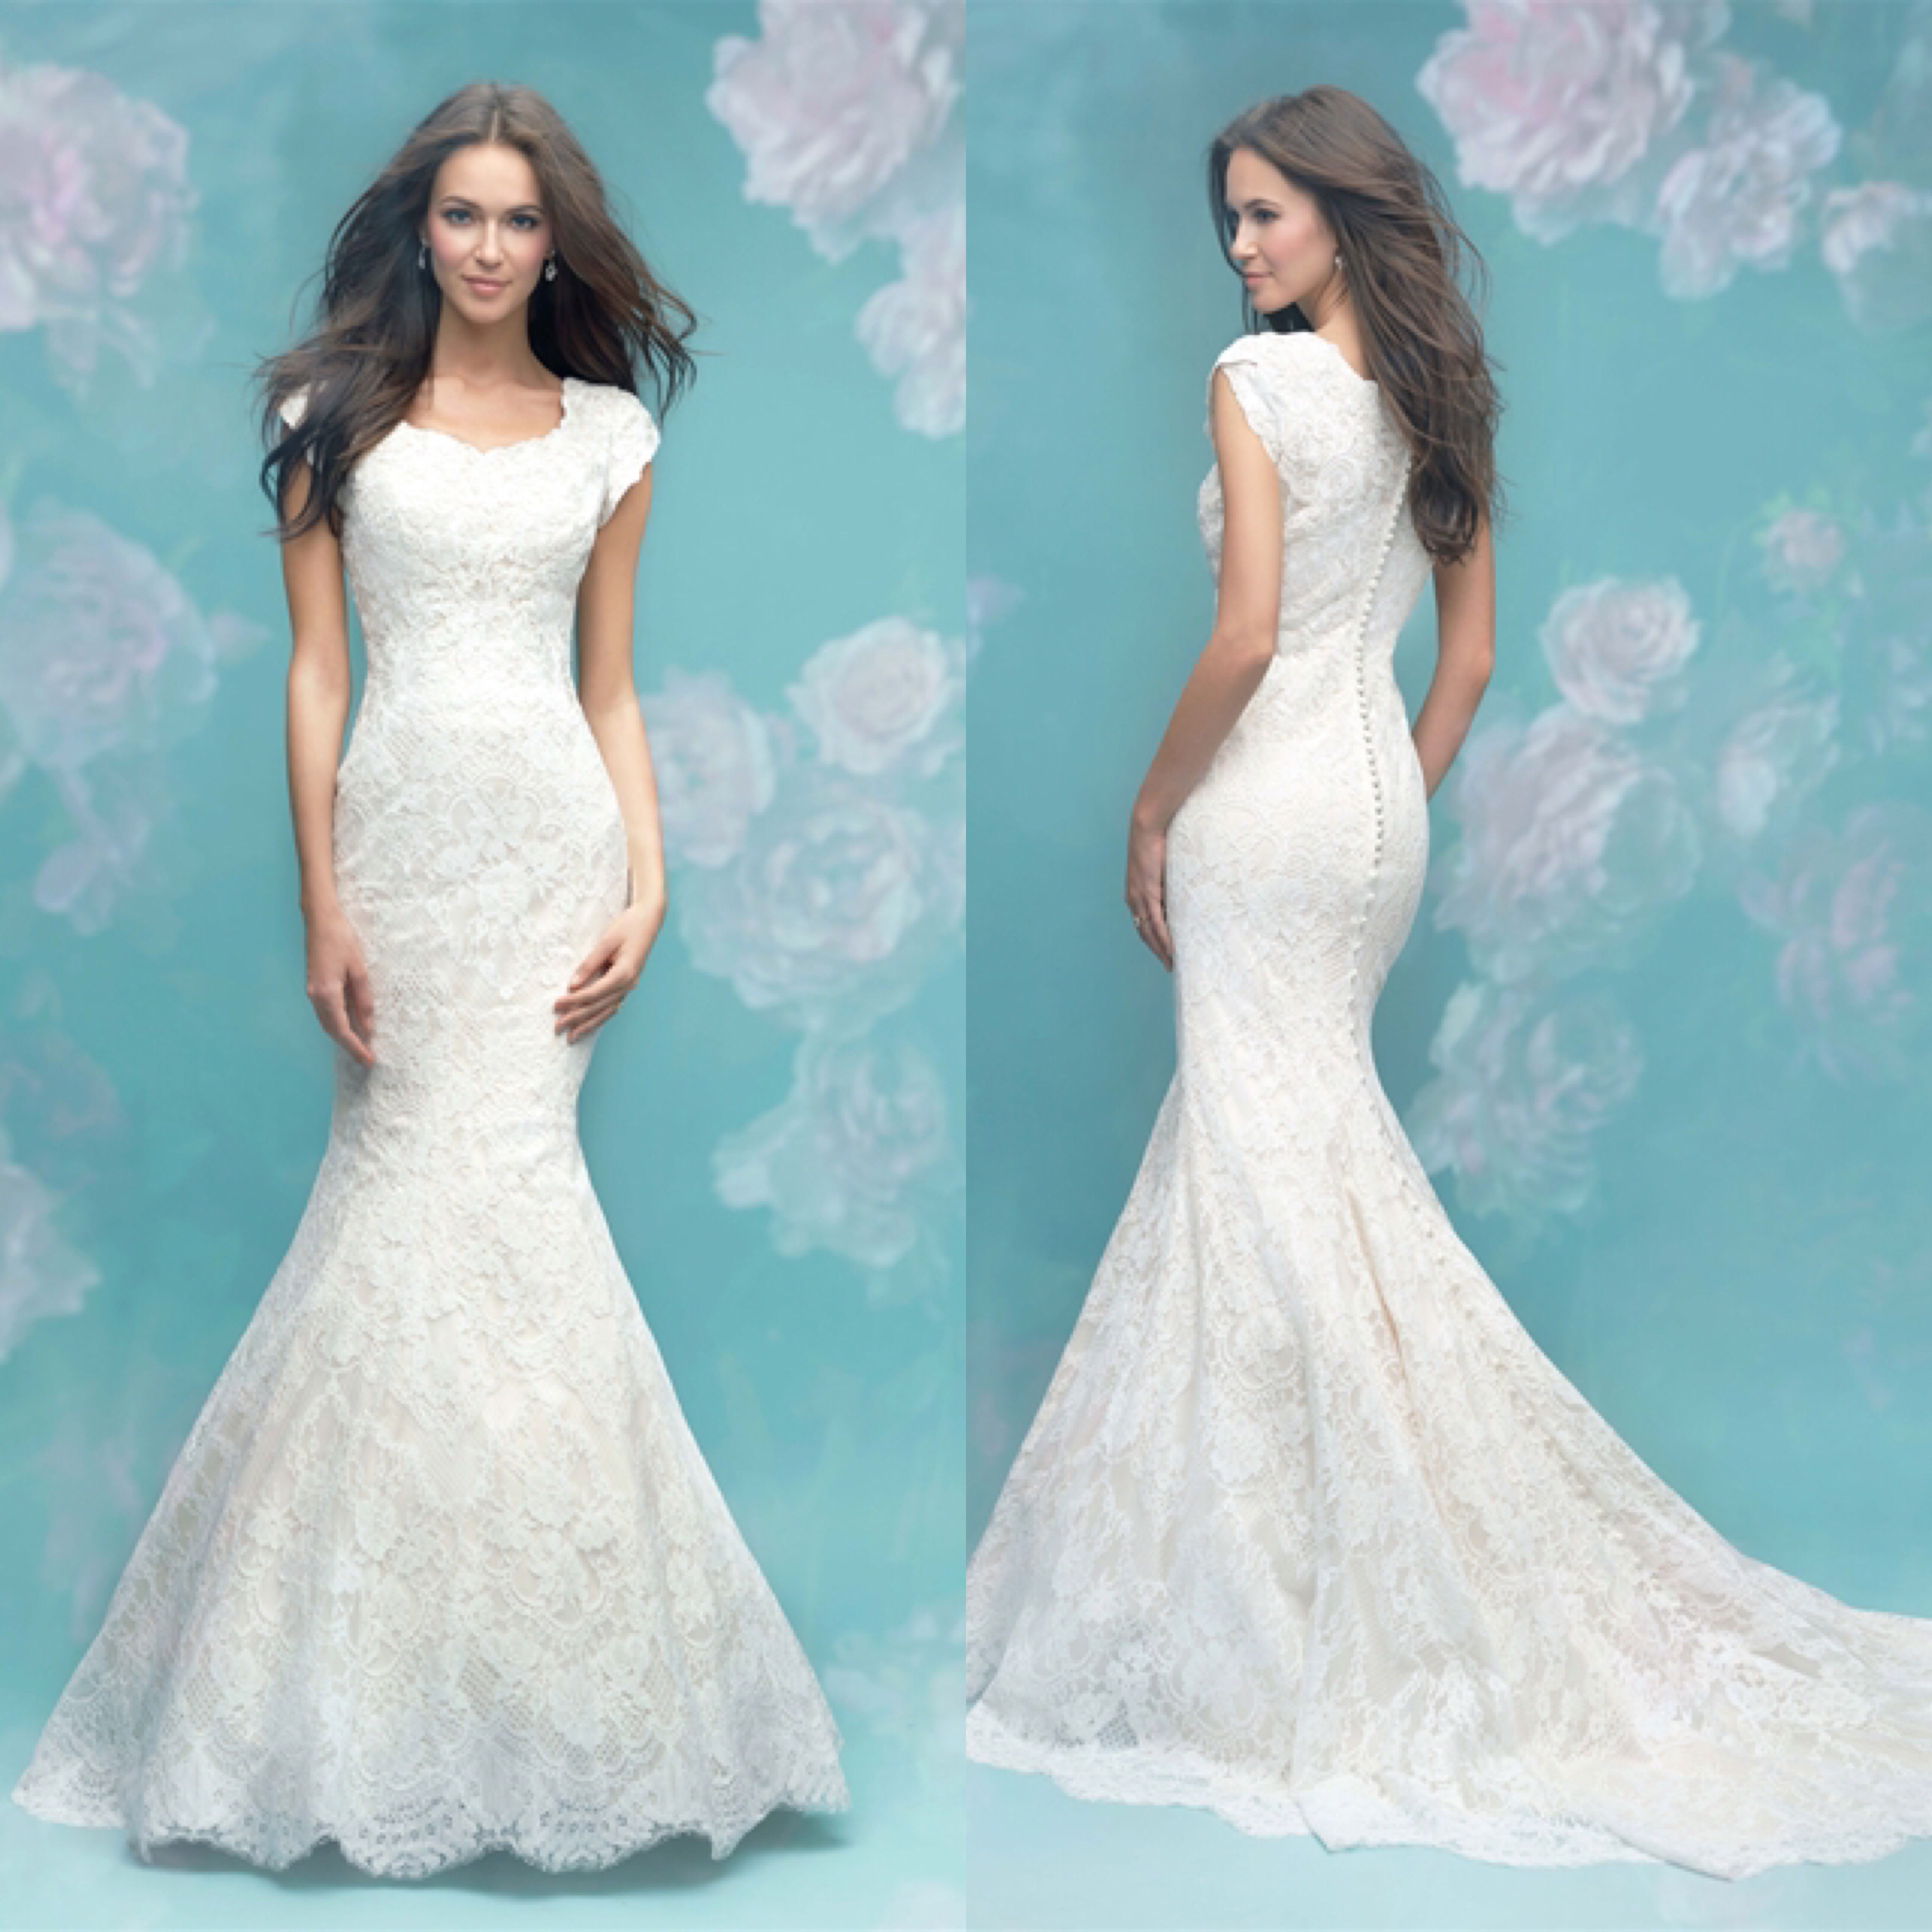 Perfect Wedding Dresses For Under 200 Adornment - All Wedding ...